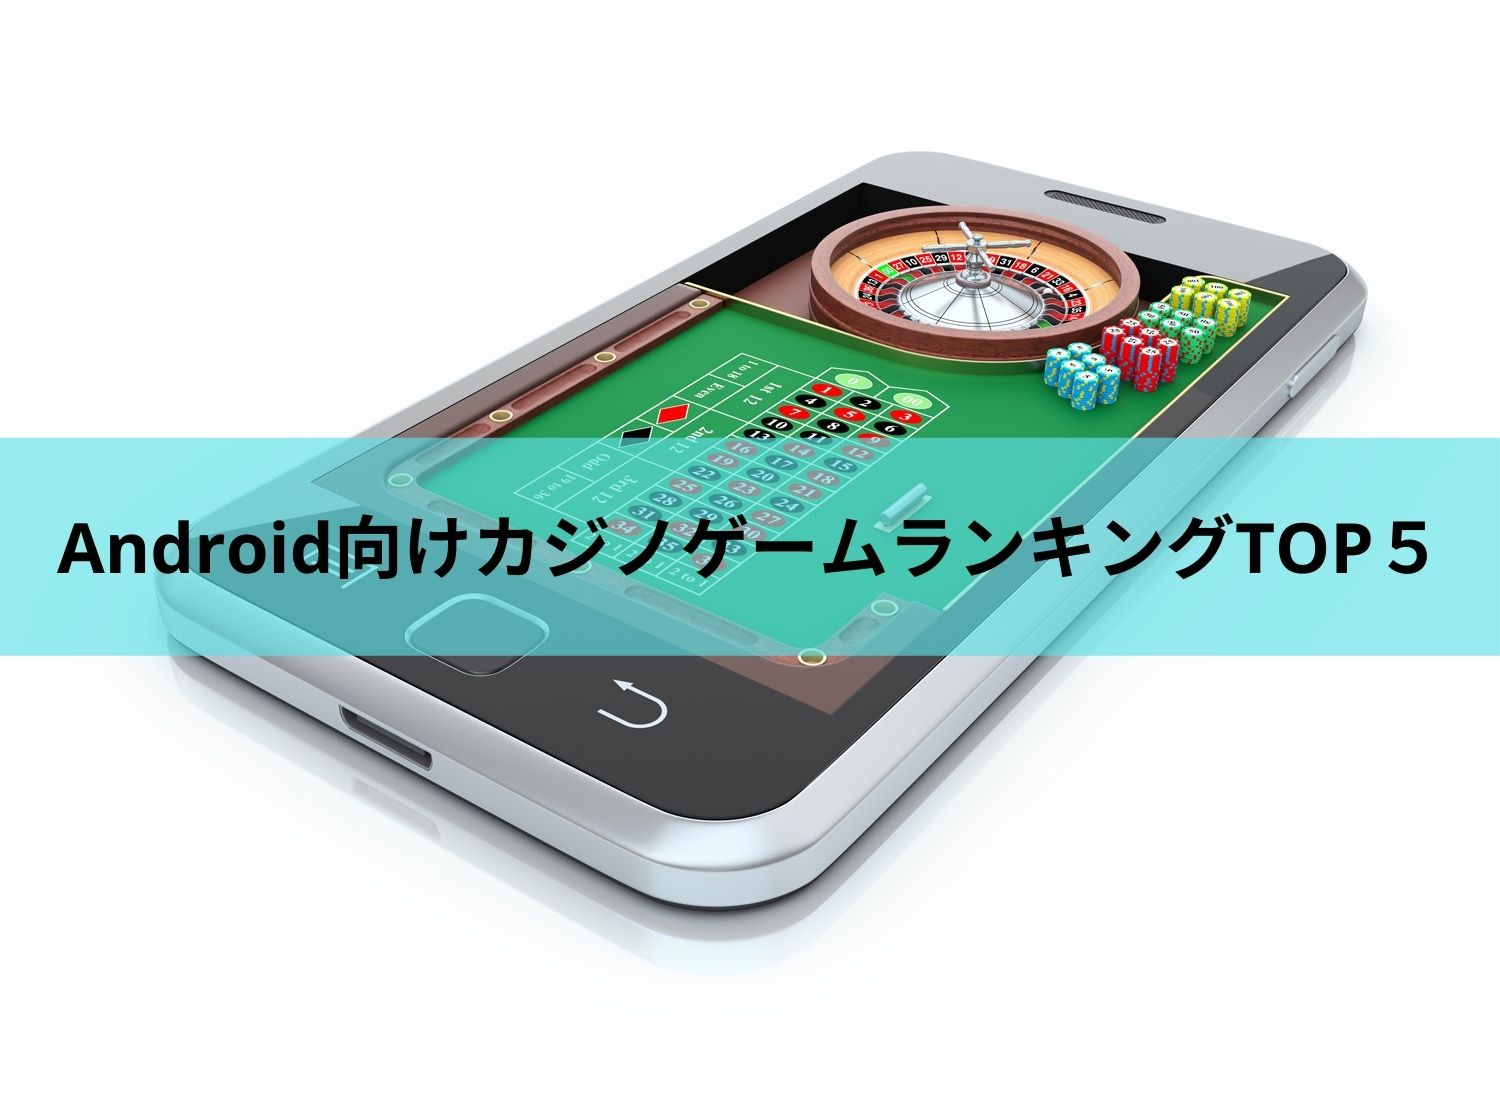 Android向けカジノゲームランキングTOP5